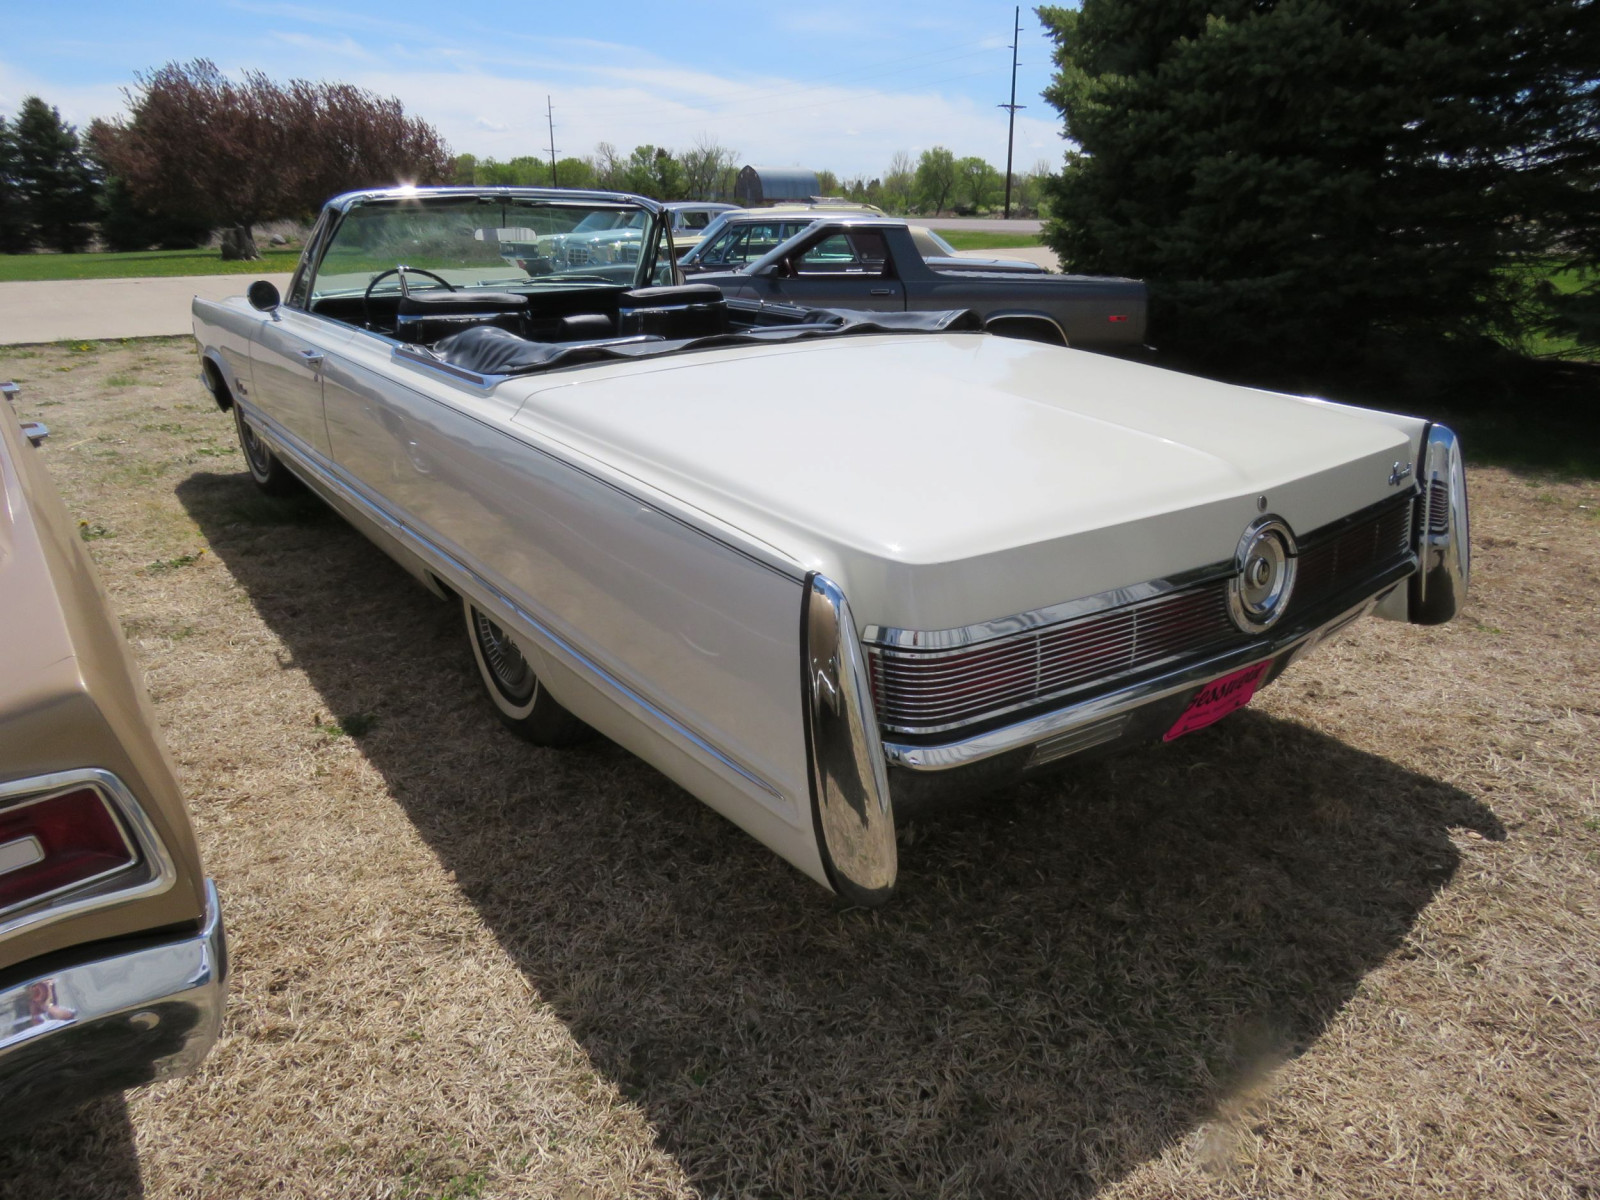 1967 Chrysler Imperial Convertible - Image 9